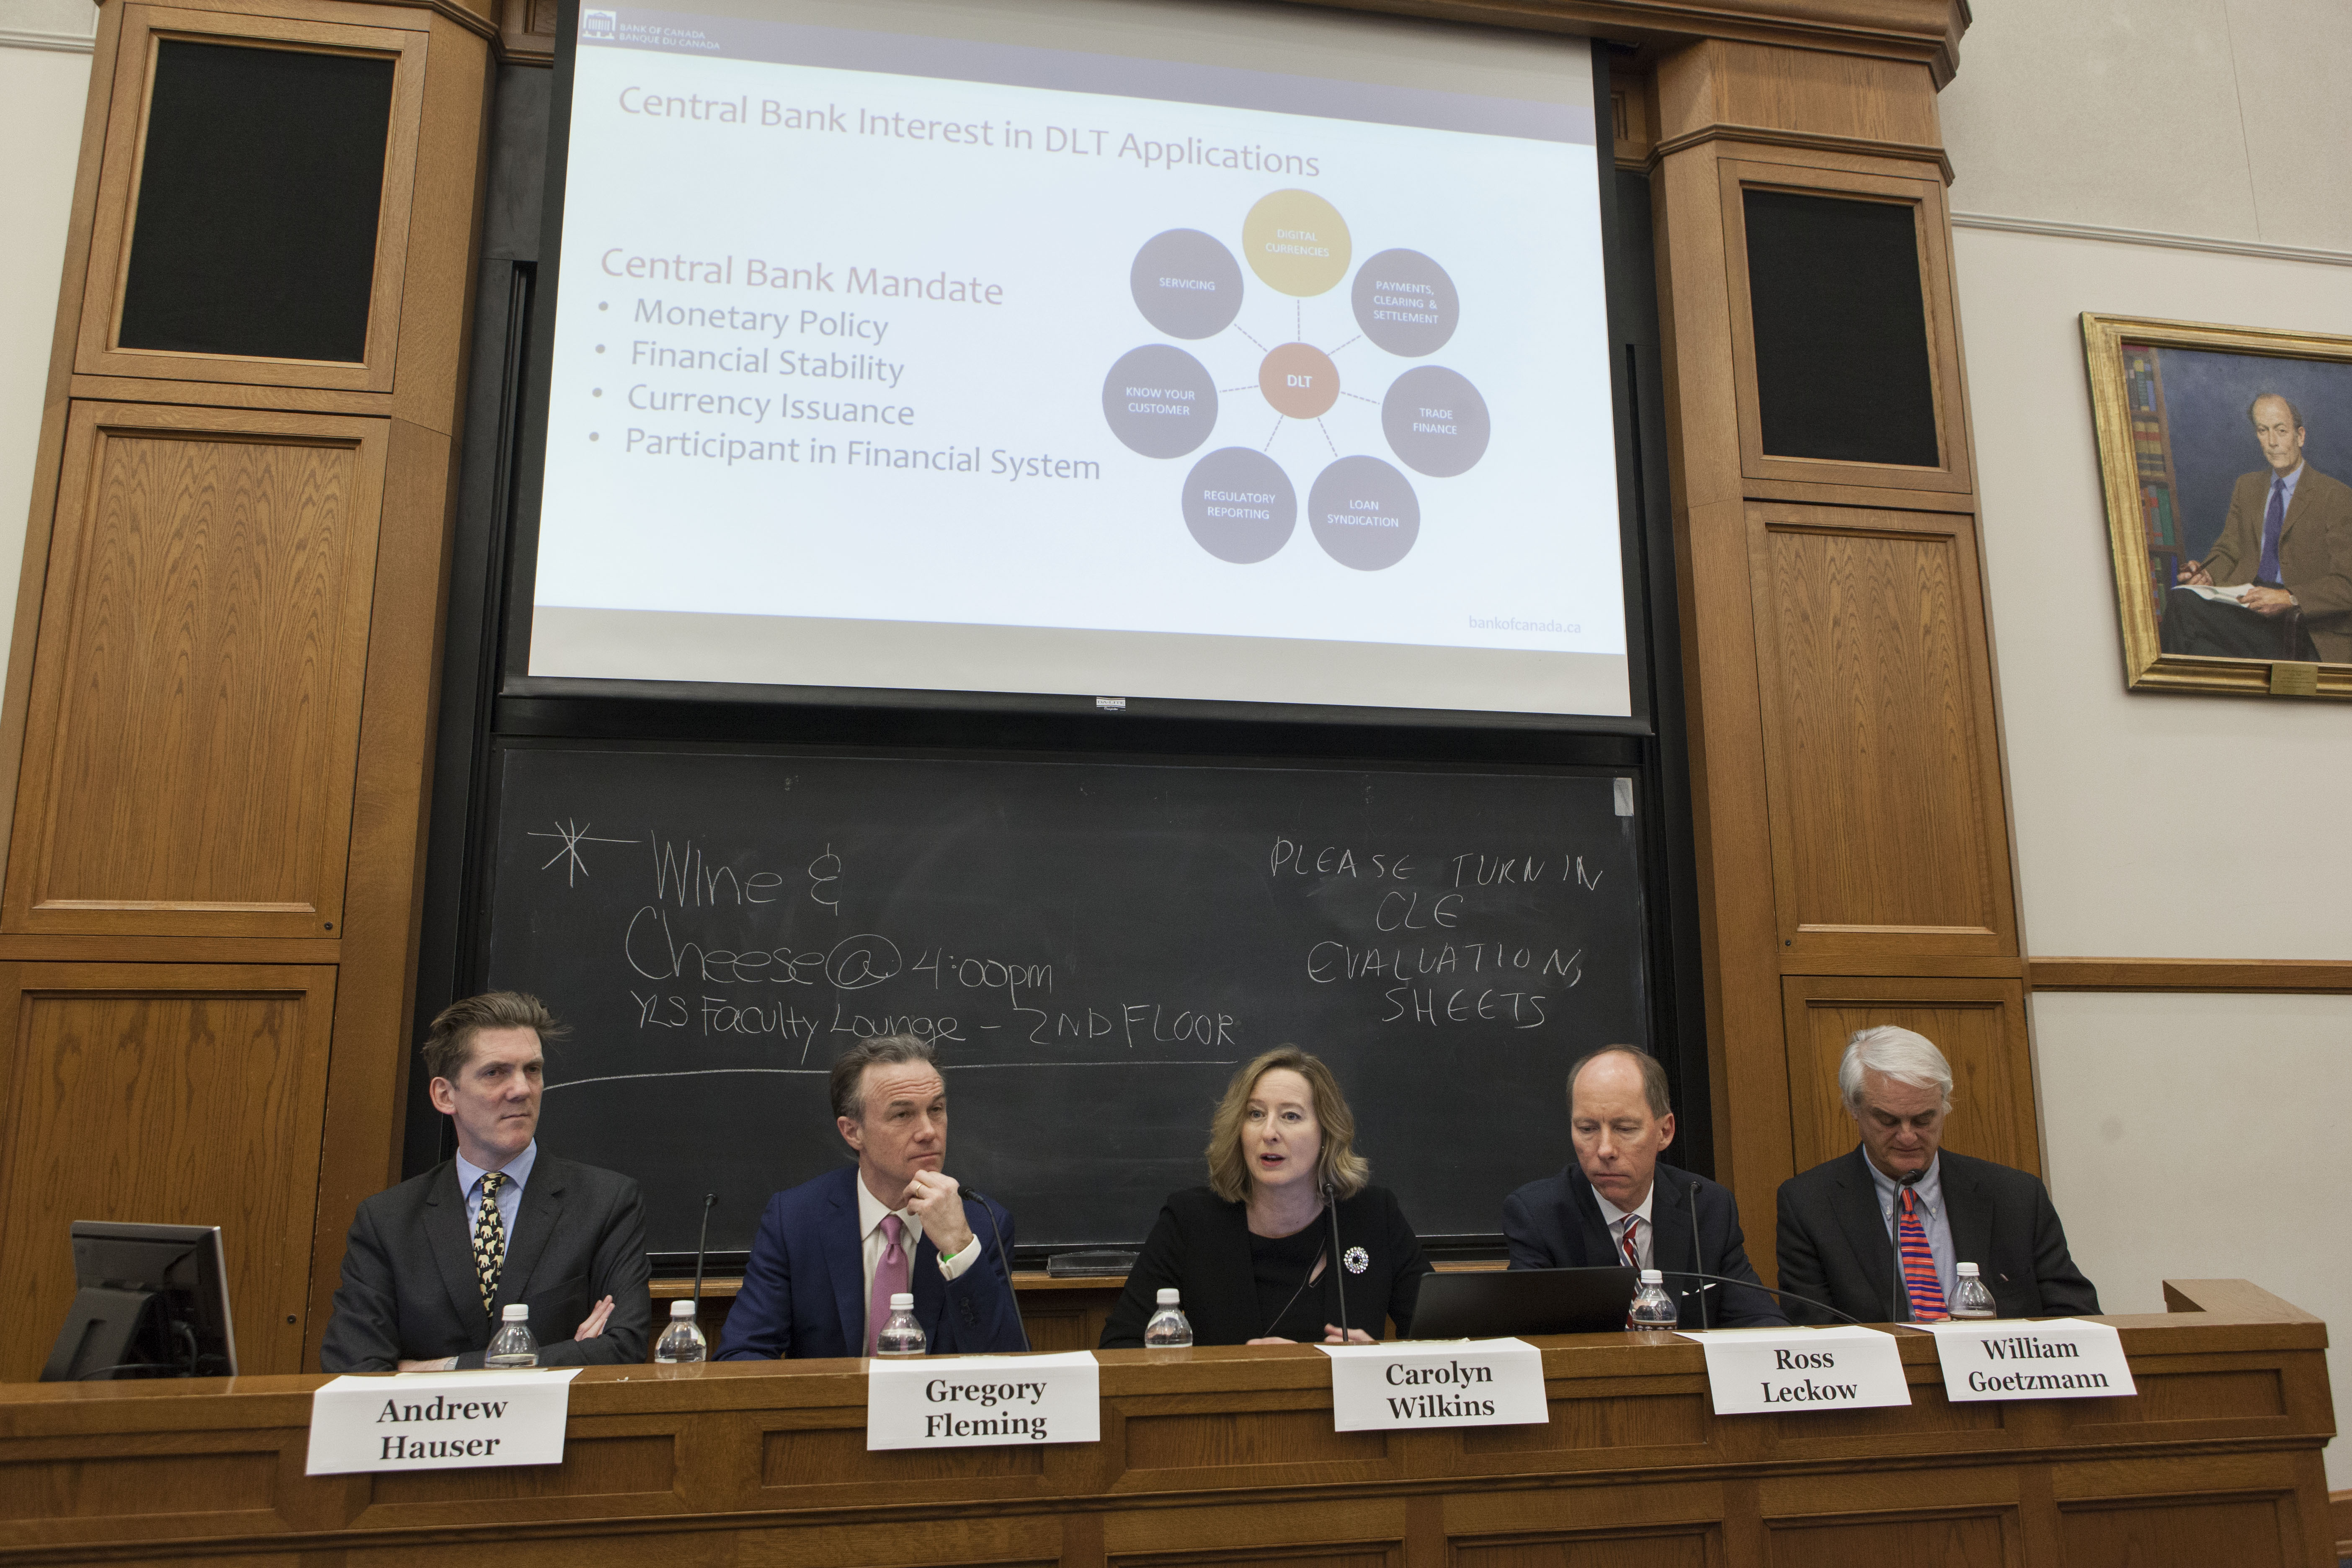 Bank of England Exec. Dir. Andrew Hauser, YLS Senior Research Scholar and Visiting Lecturer Gregory Fleming '88, Bank of Canada Senior Deputy Gov. Carolyn Wilkins, IMF Deputy General Counsel Ross Leckow, and Yale SOM Prof. William Goetzmann